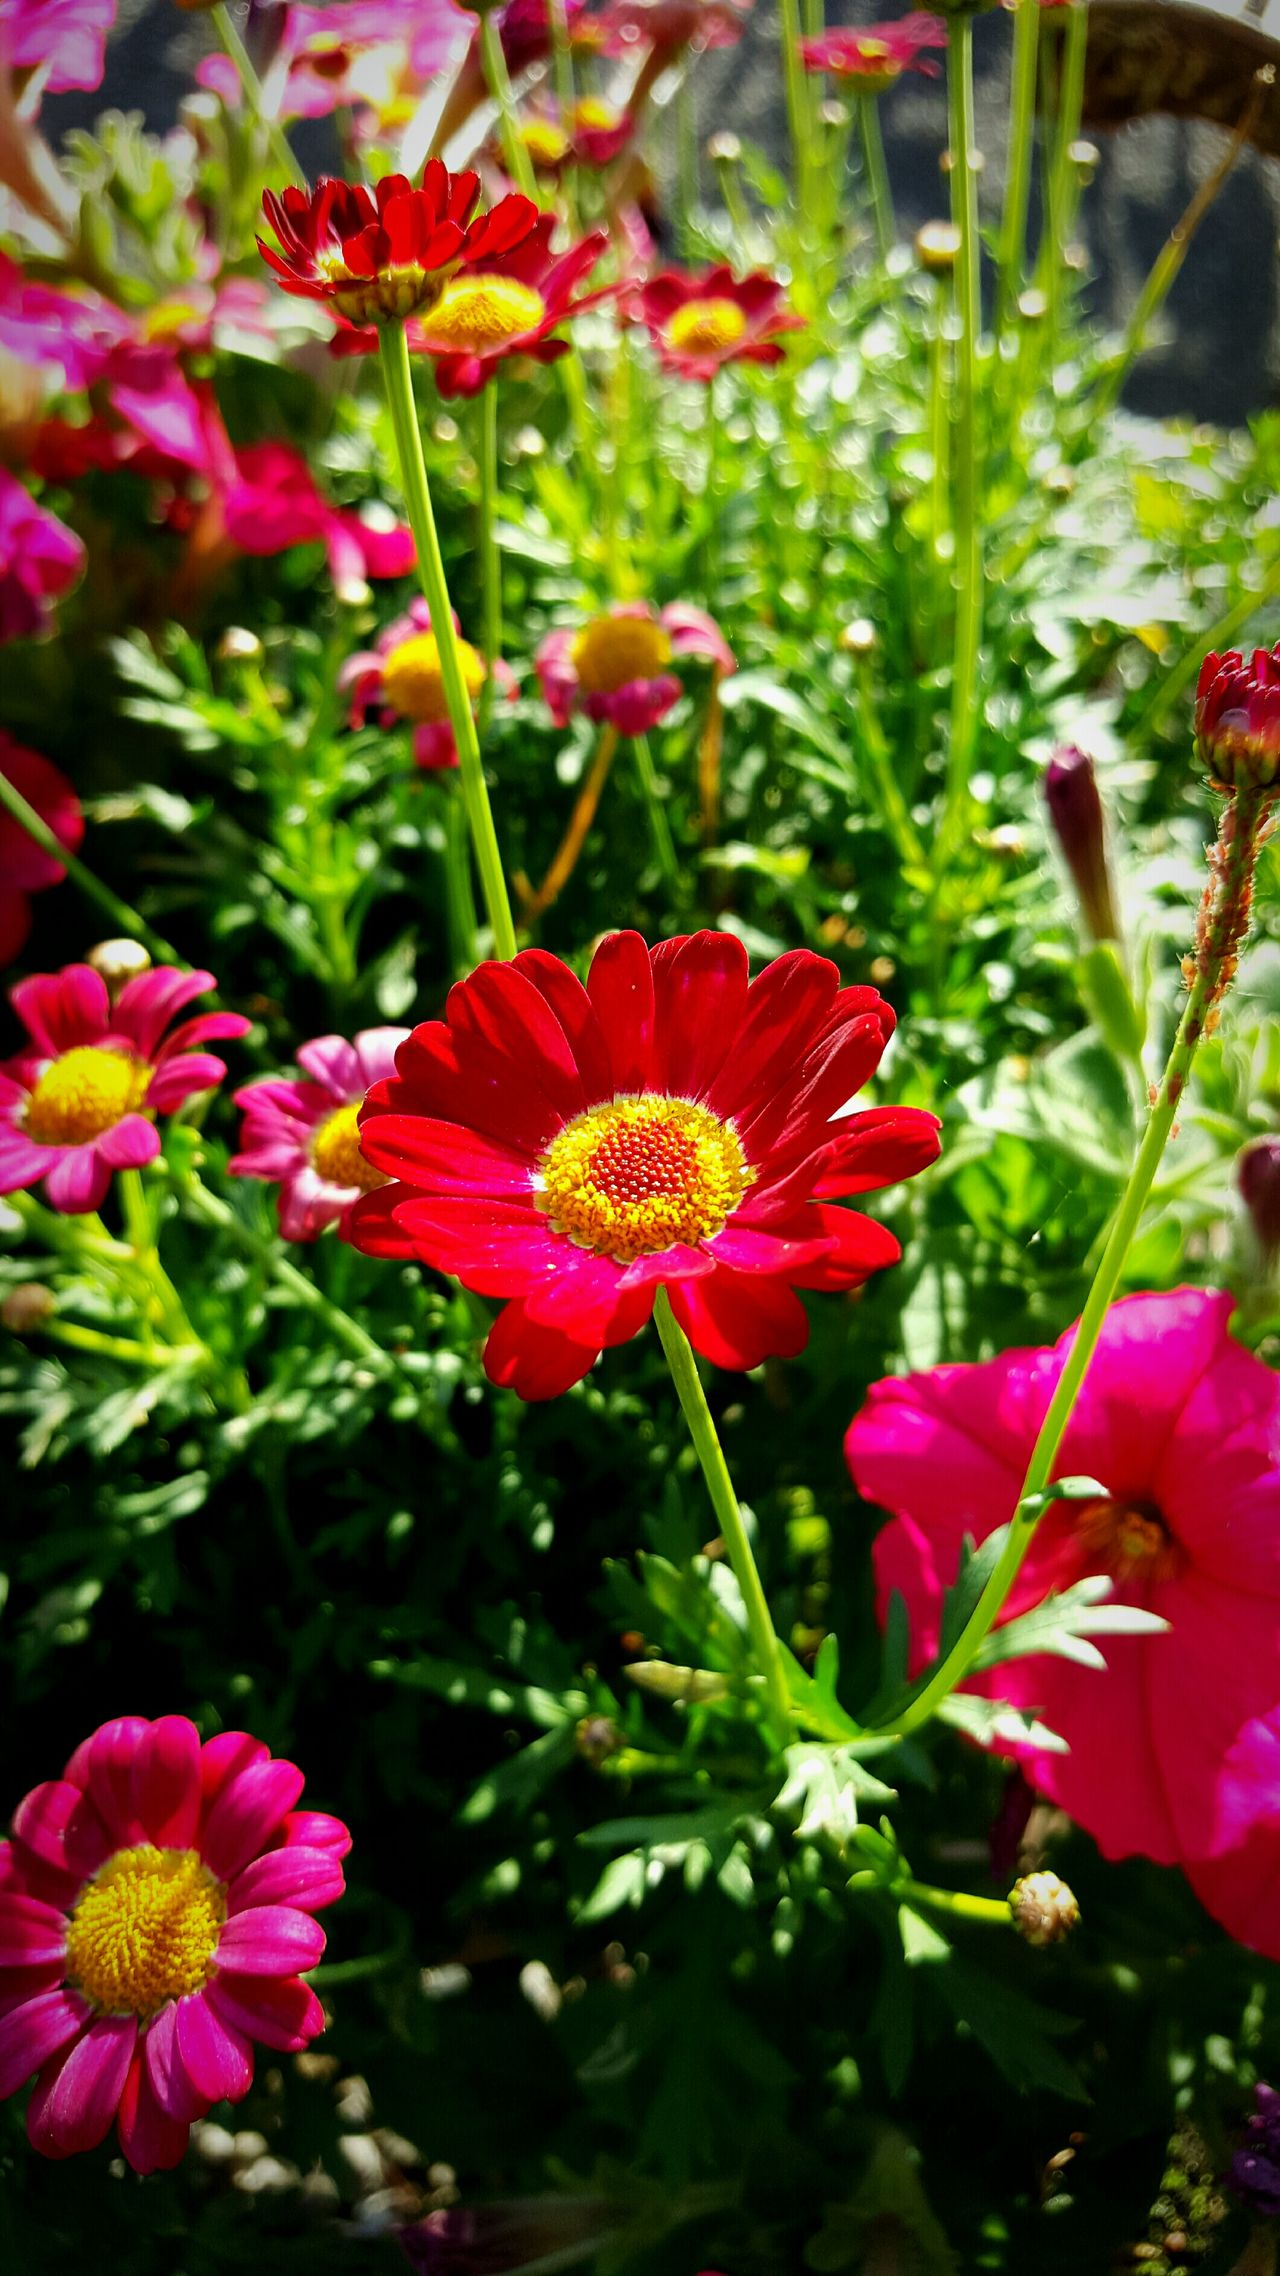 Argyranthemum frutescens. Daisy red Colour Of Life Container Gardening No People Close-up Garden Bright Flower daytime Garden Photography Gardening